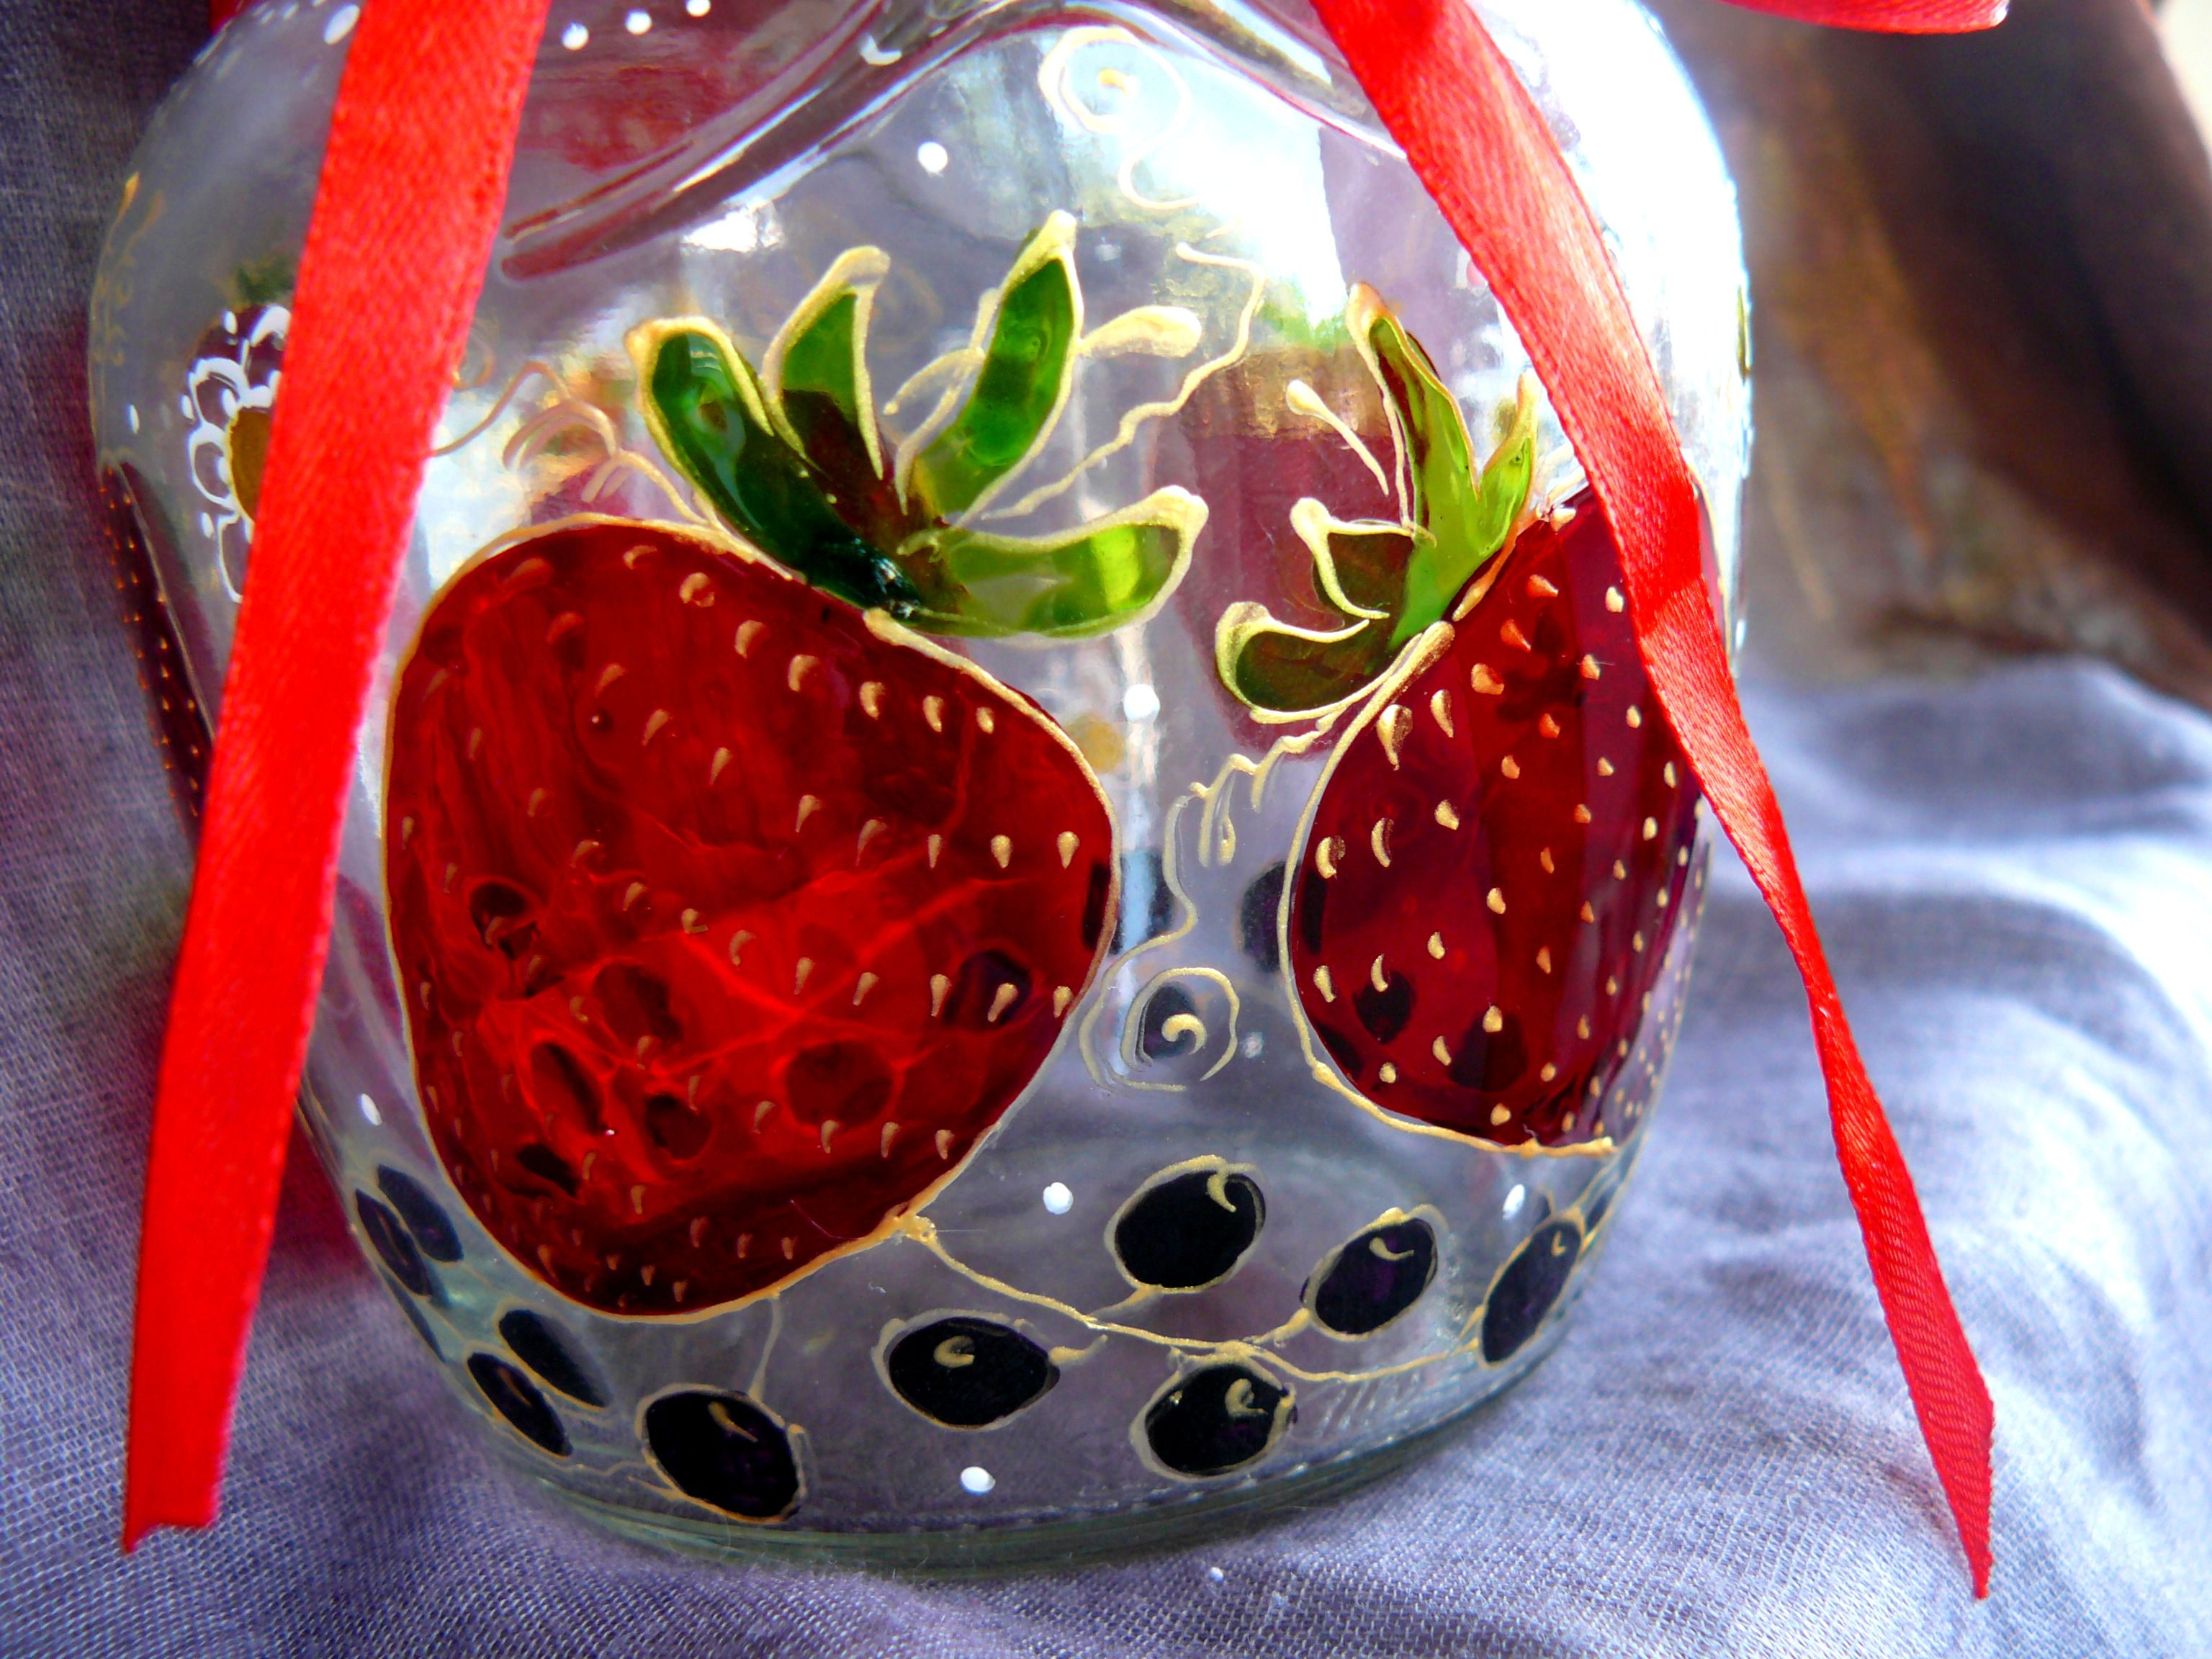 paints glass decor can jar berries